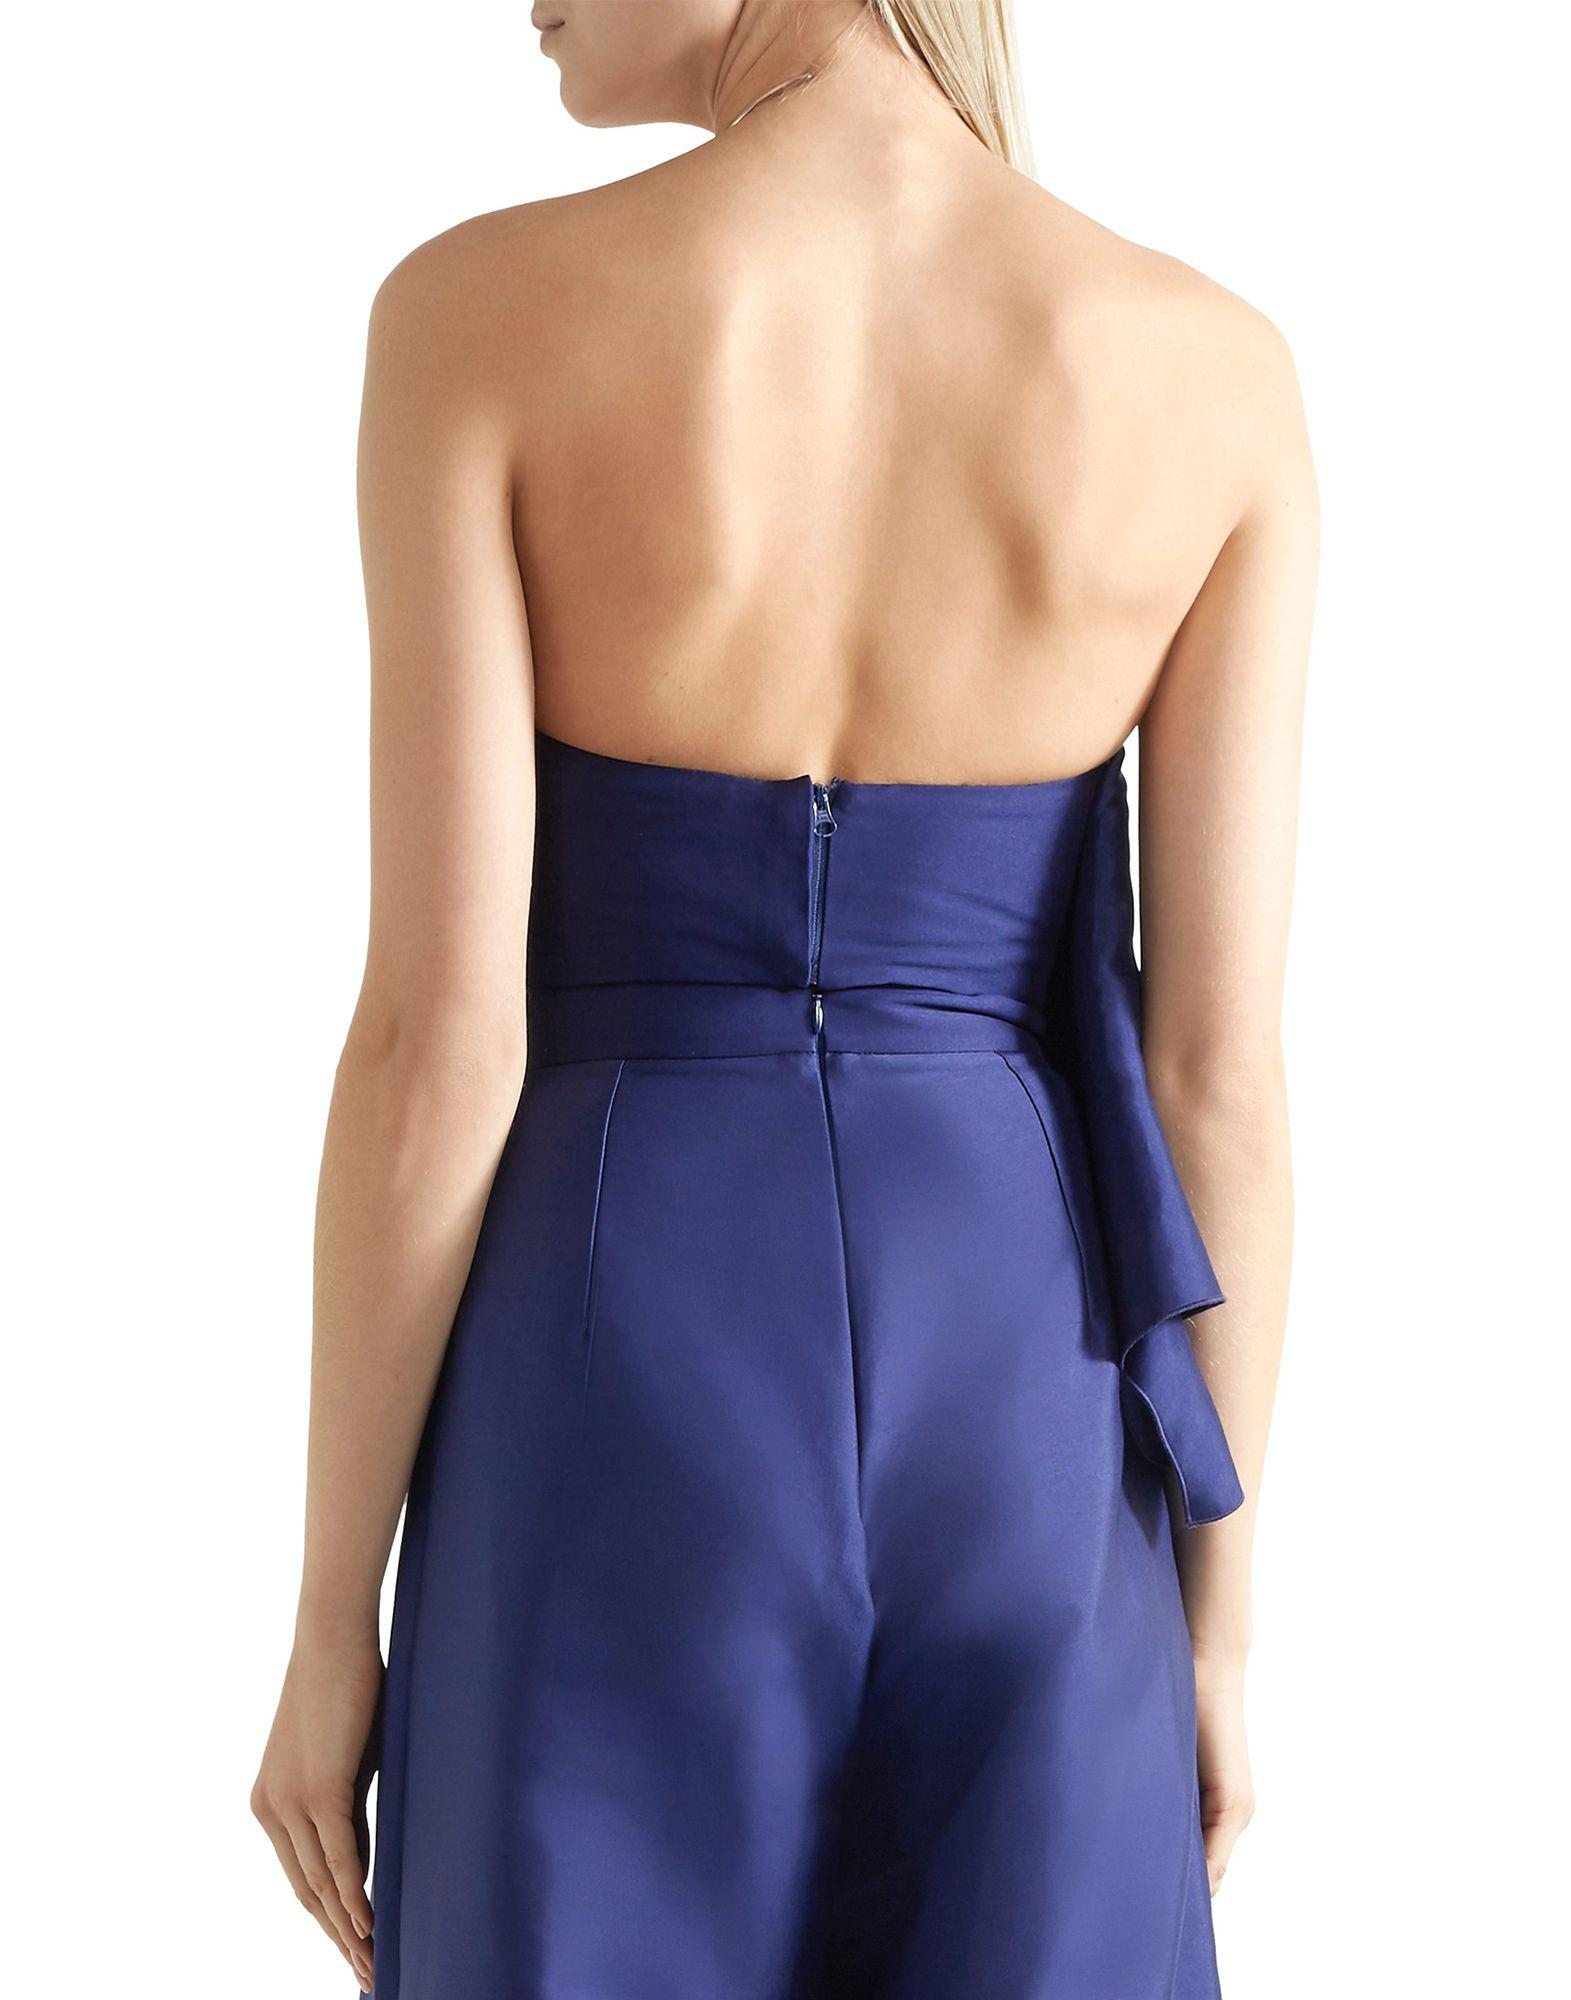 c60775eb3a Lyst - Solace London Tube Top in Blue